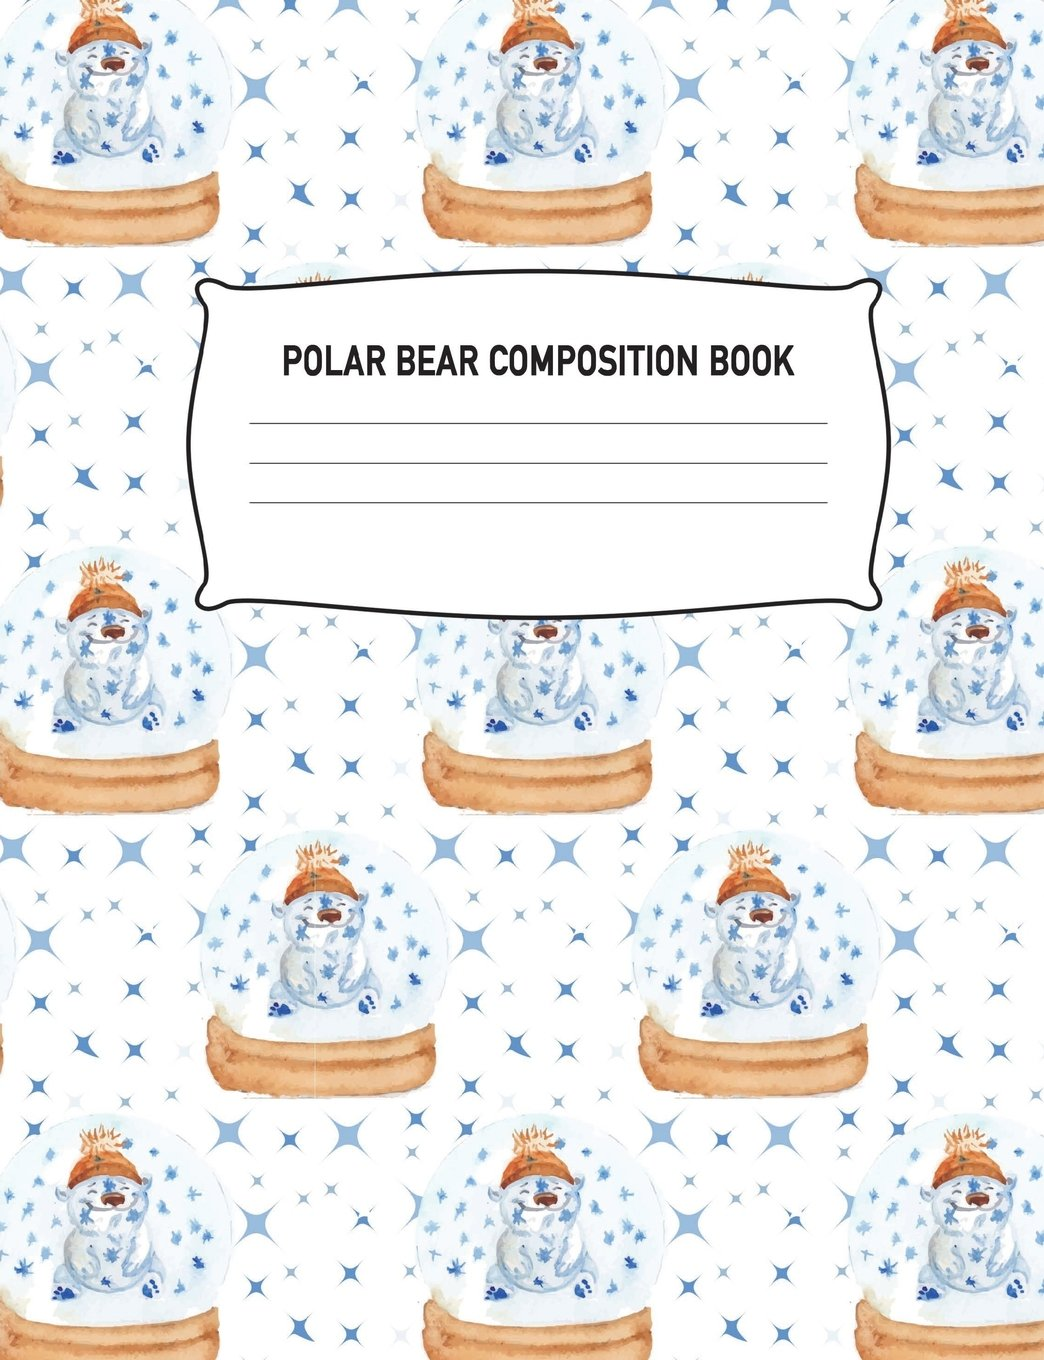 Read Online Polar Bear Composition Book: Notebook Wide Ruled Notepad Arctic Circle Animal Pattern Effect Diary Practice Journal Organizer: Adults Kids Youth: ... 7.44 x 9.69 Lined Paper Pad 100 Pages PDF